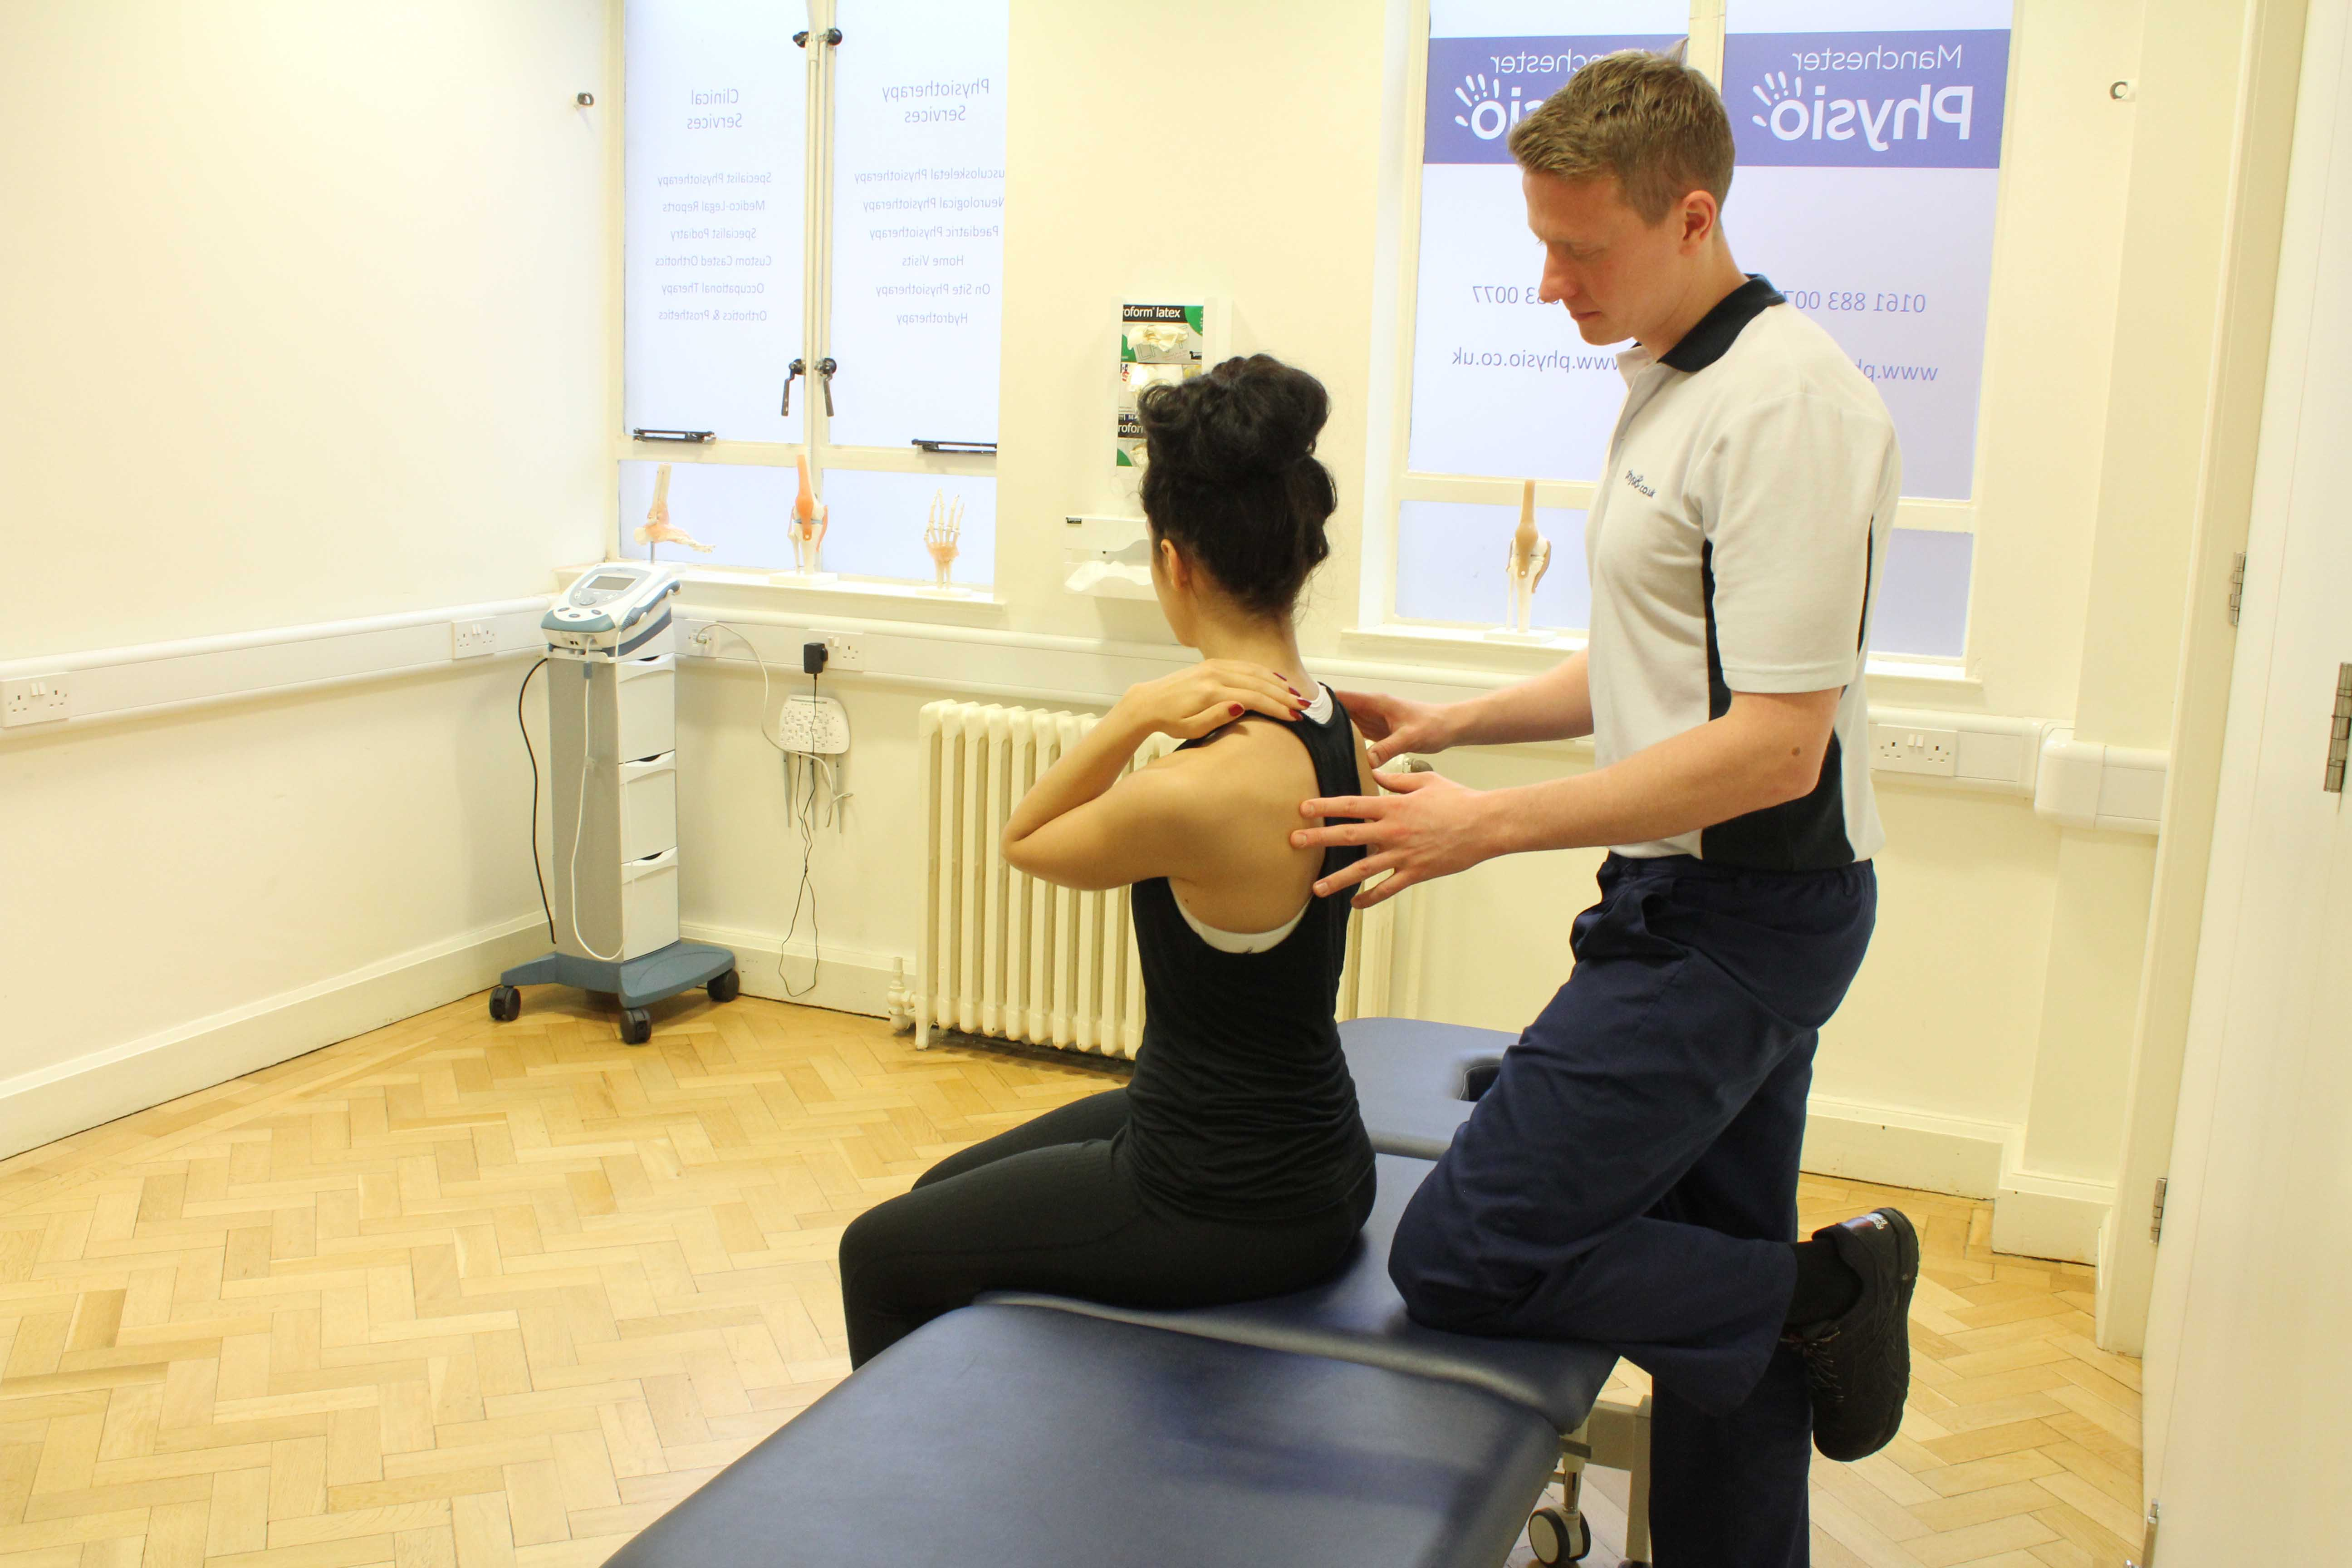 Active cycle of breathing exercises supervised by a specialist physiotherapist